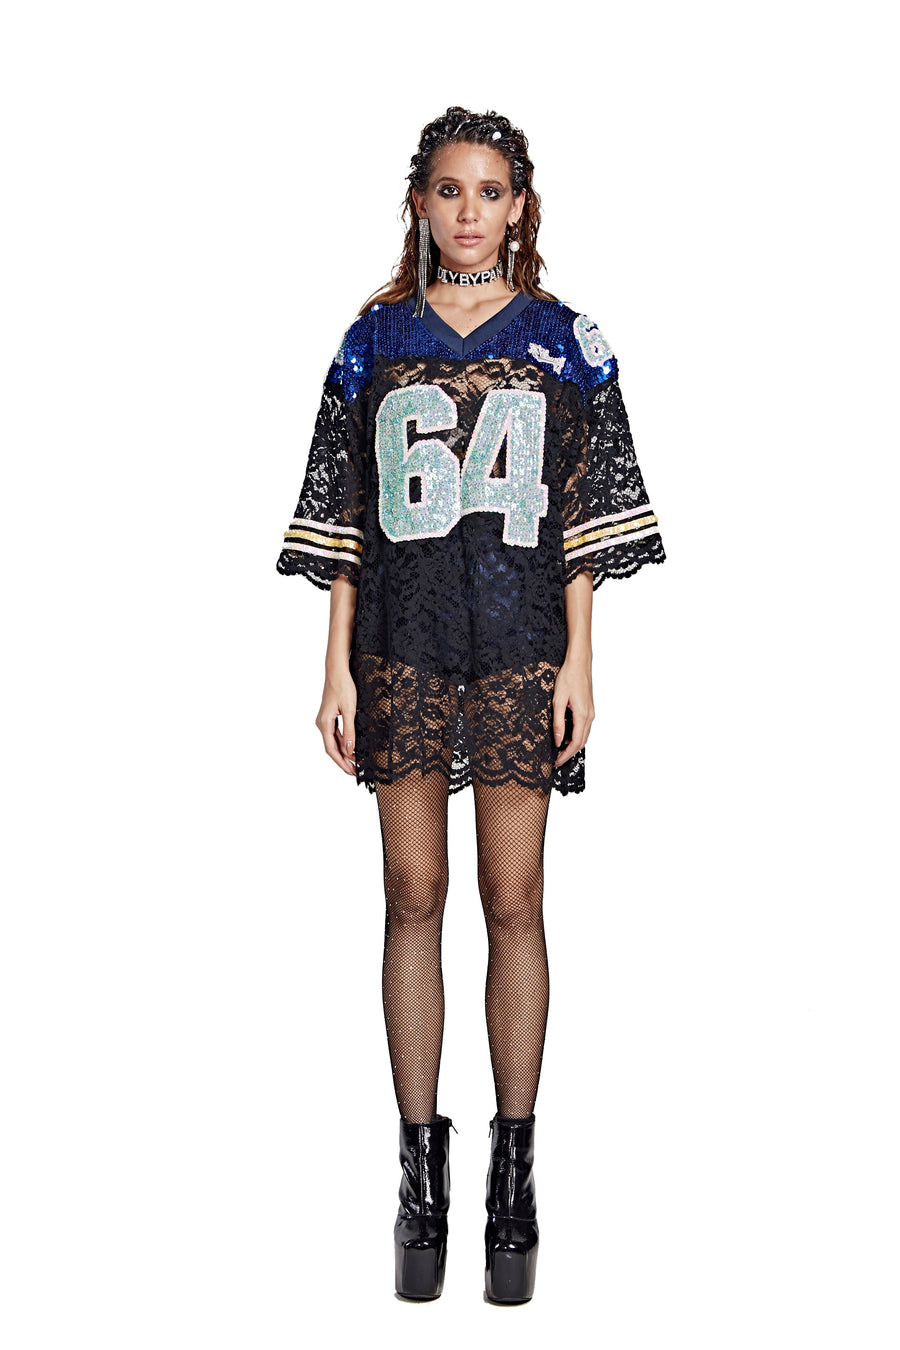 Lace Football Jersey - '64' FB County - I LOVE DIY by Panida